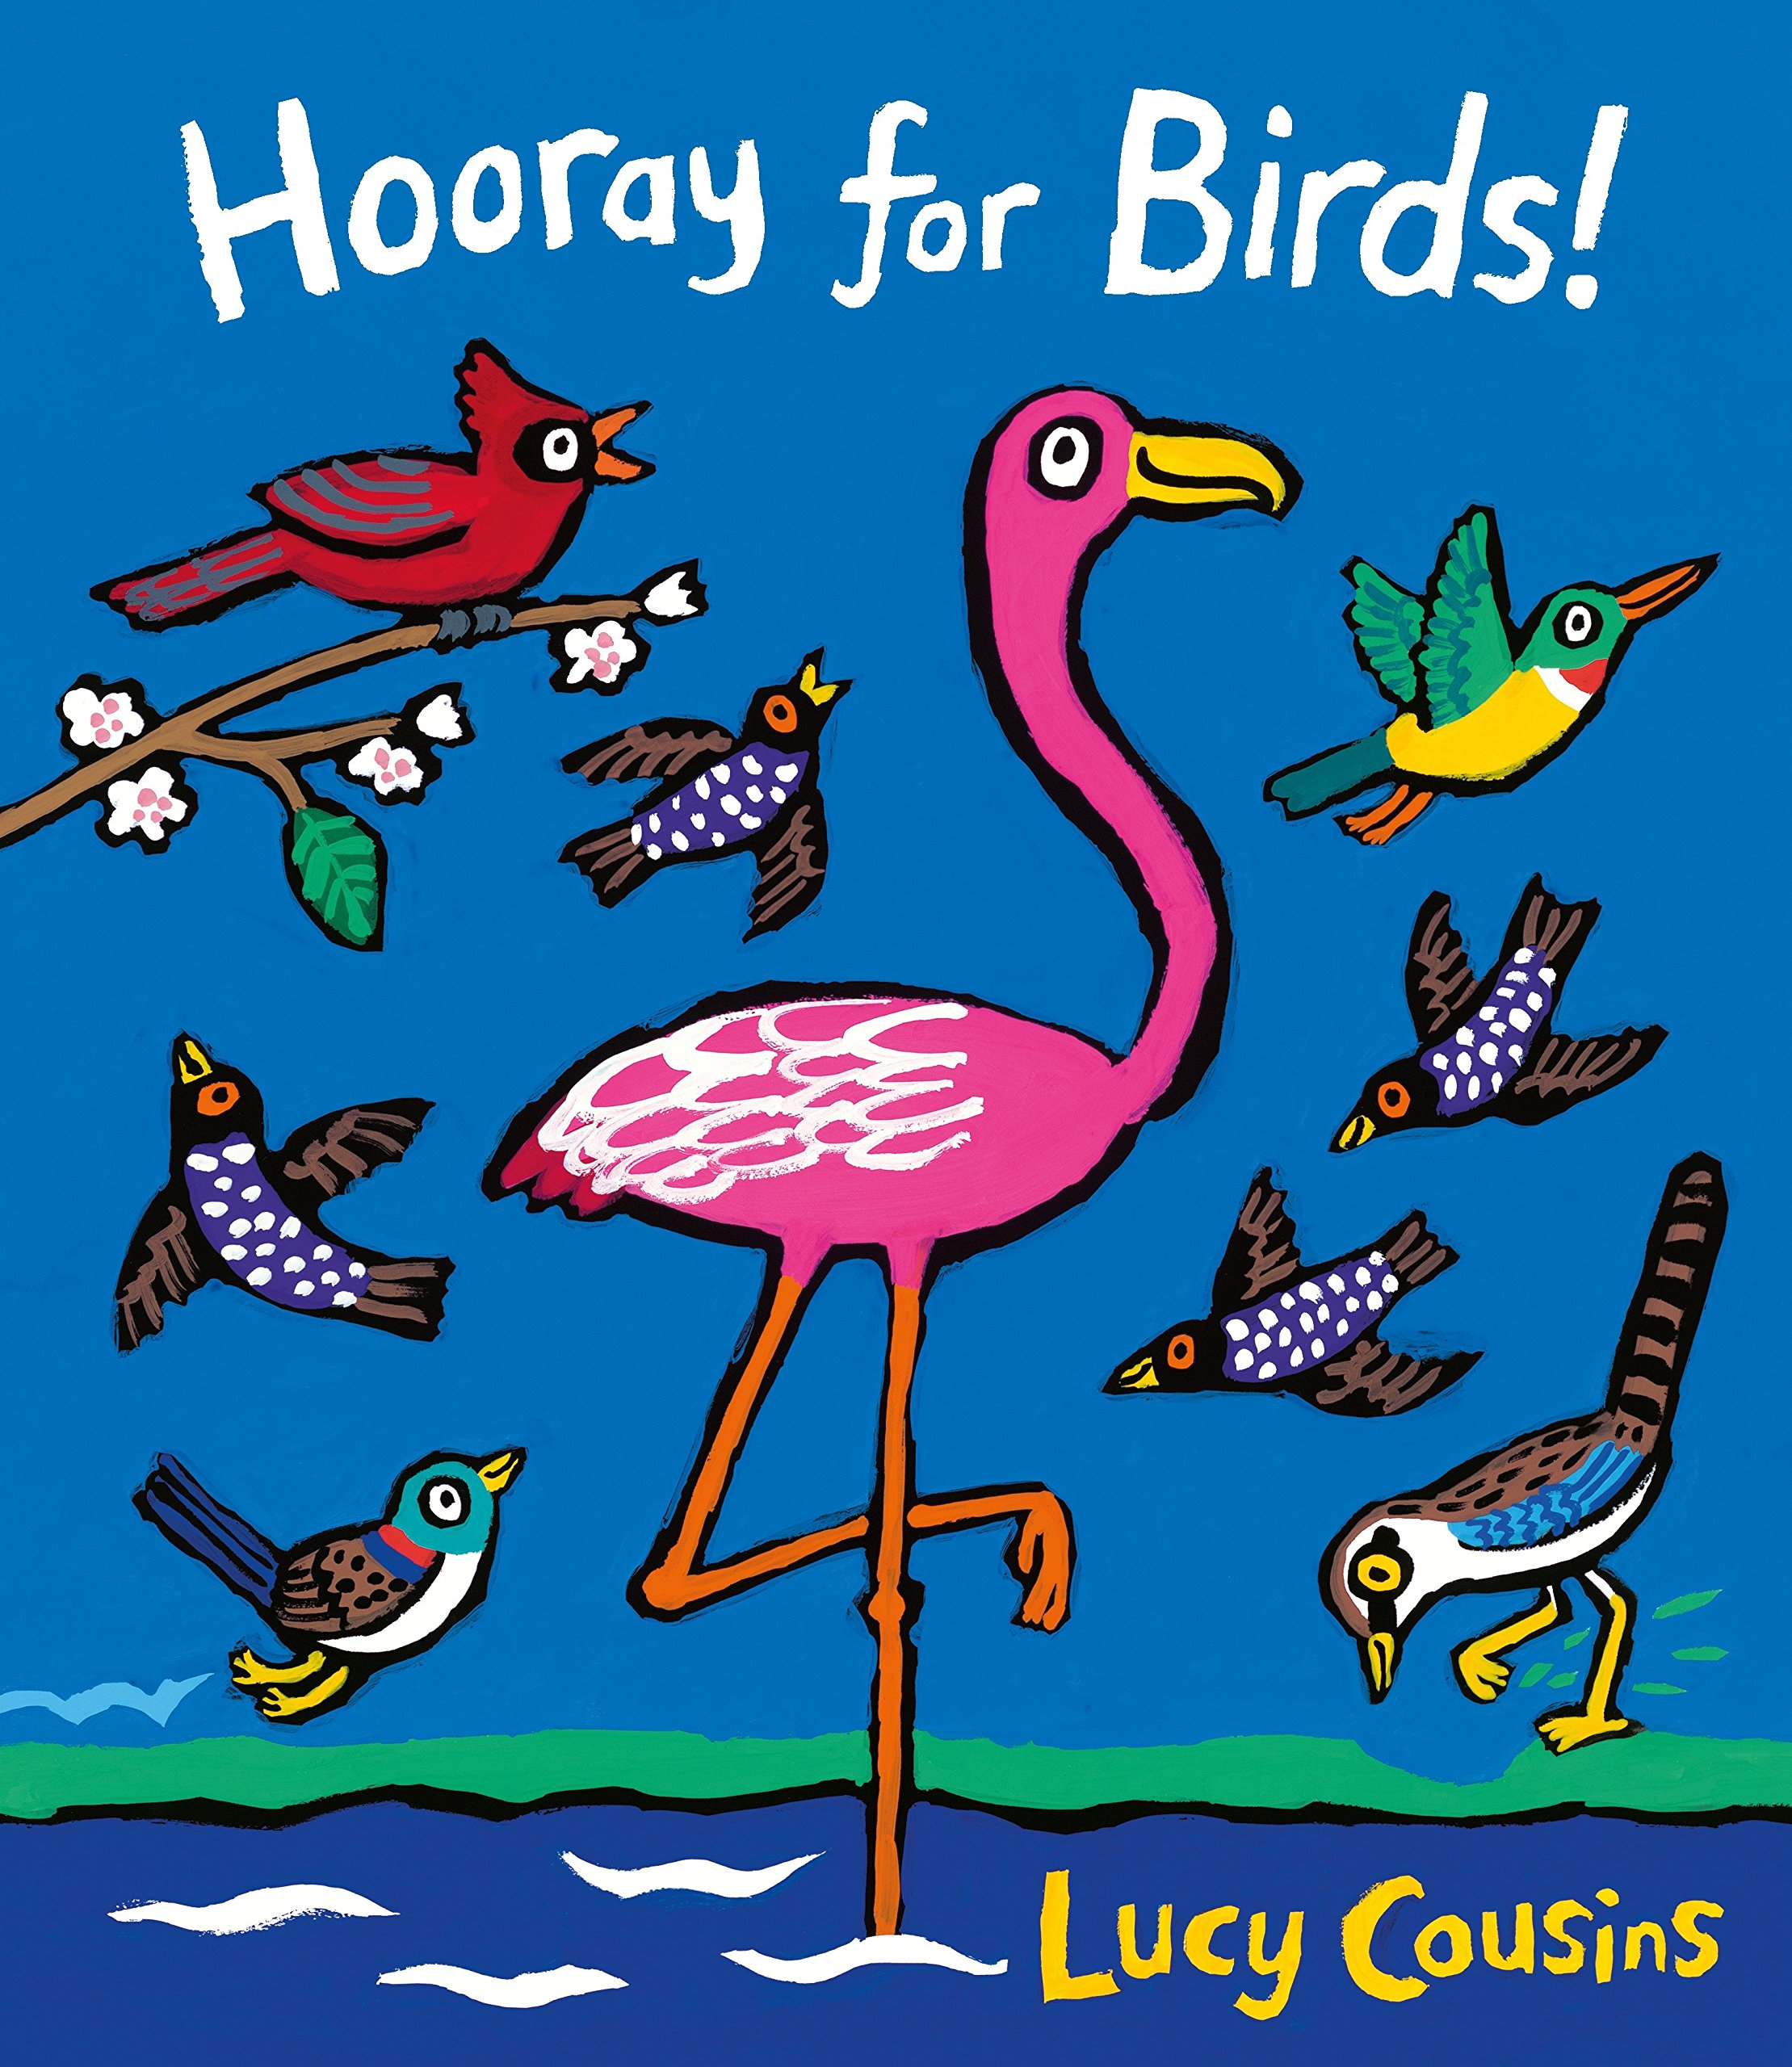 Hooray for Birds